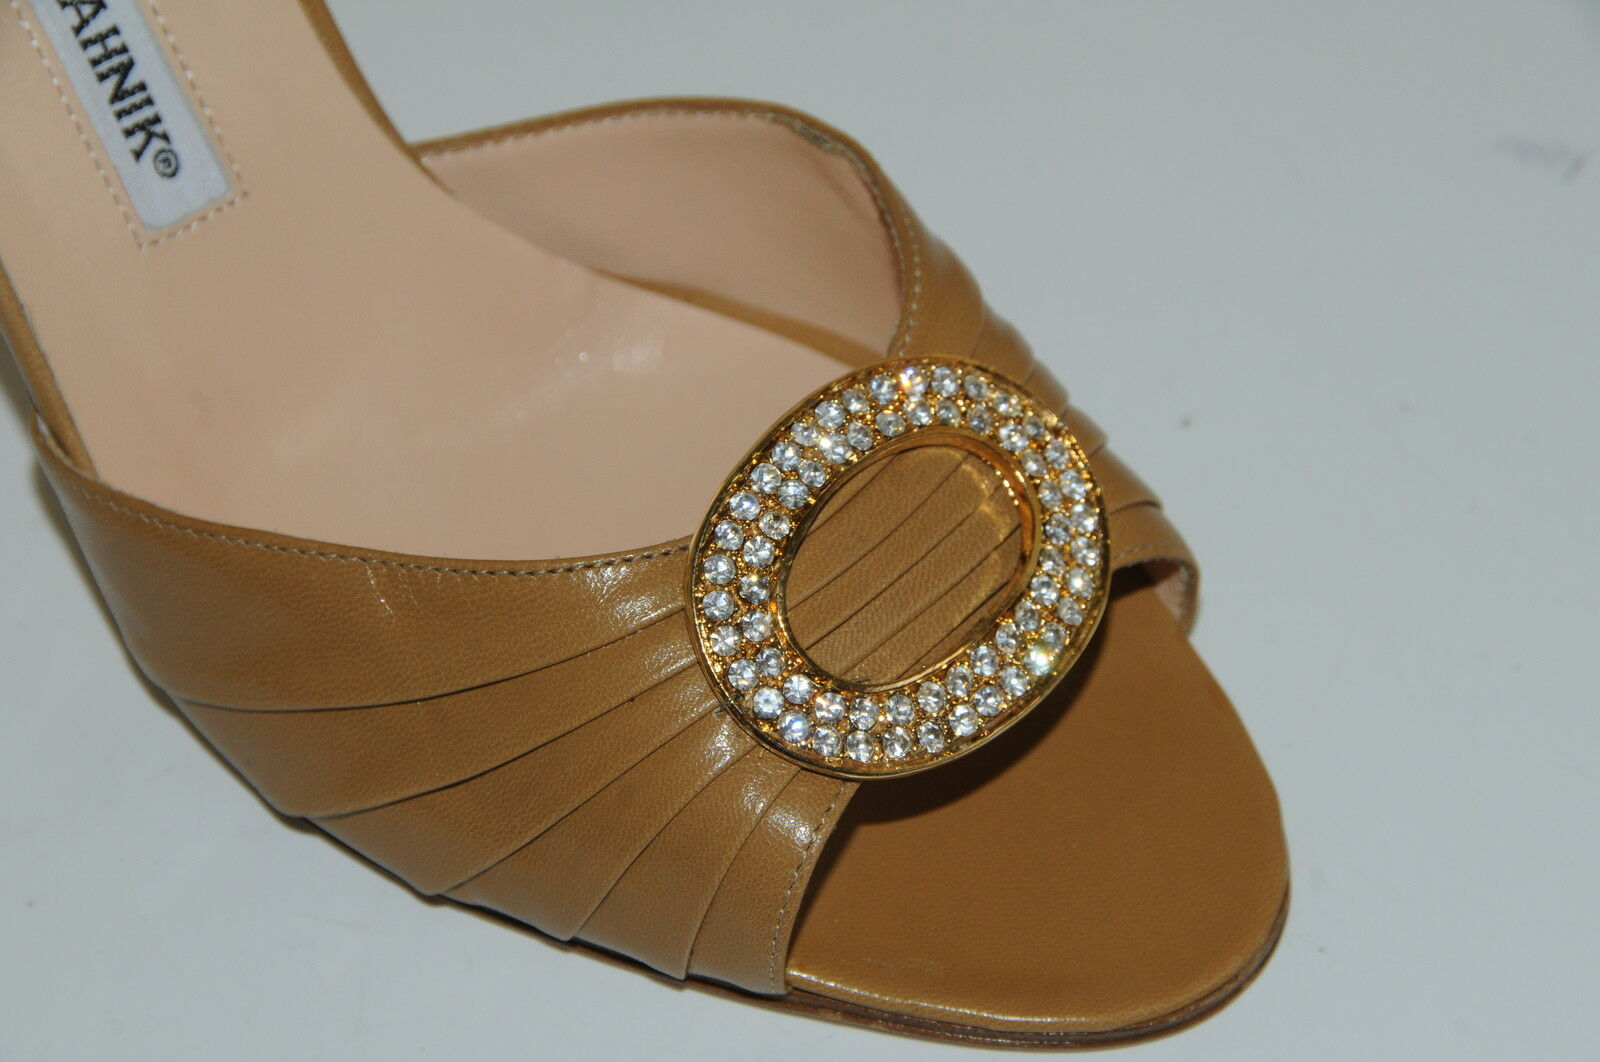 775 New MANOLO BLAHNIK SEDARABY camel beige leather jeweled SHOES 38.5 8.5 8